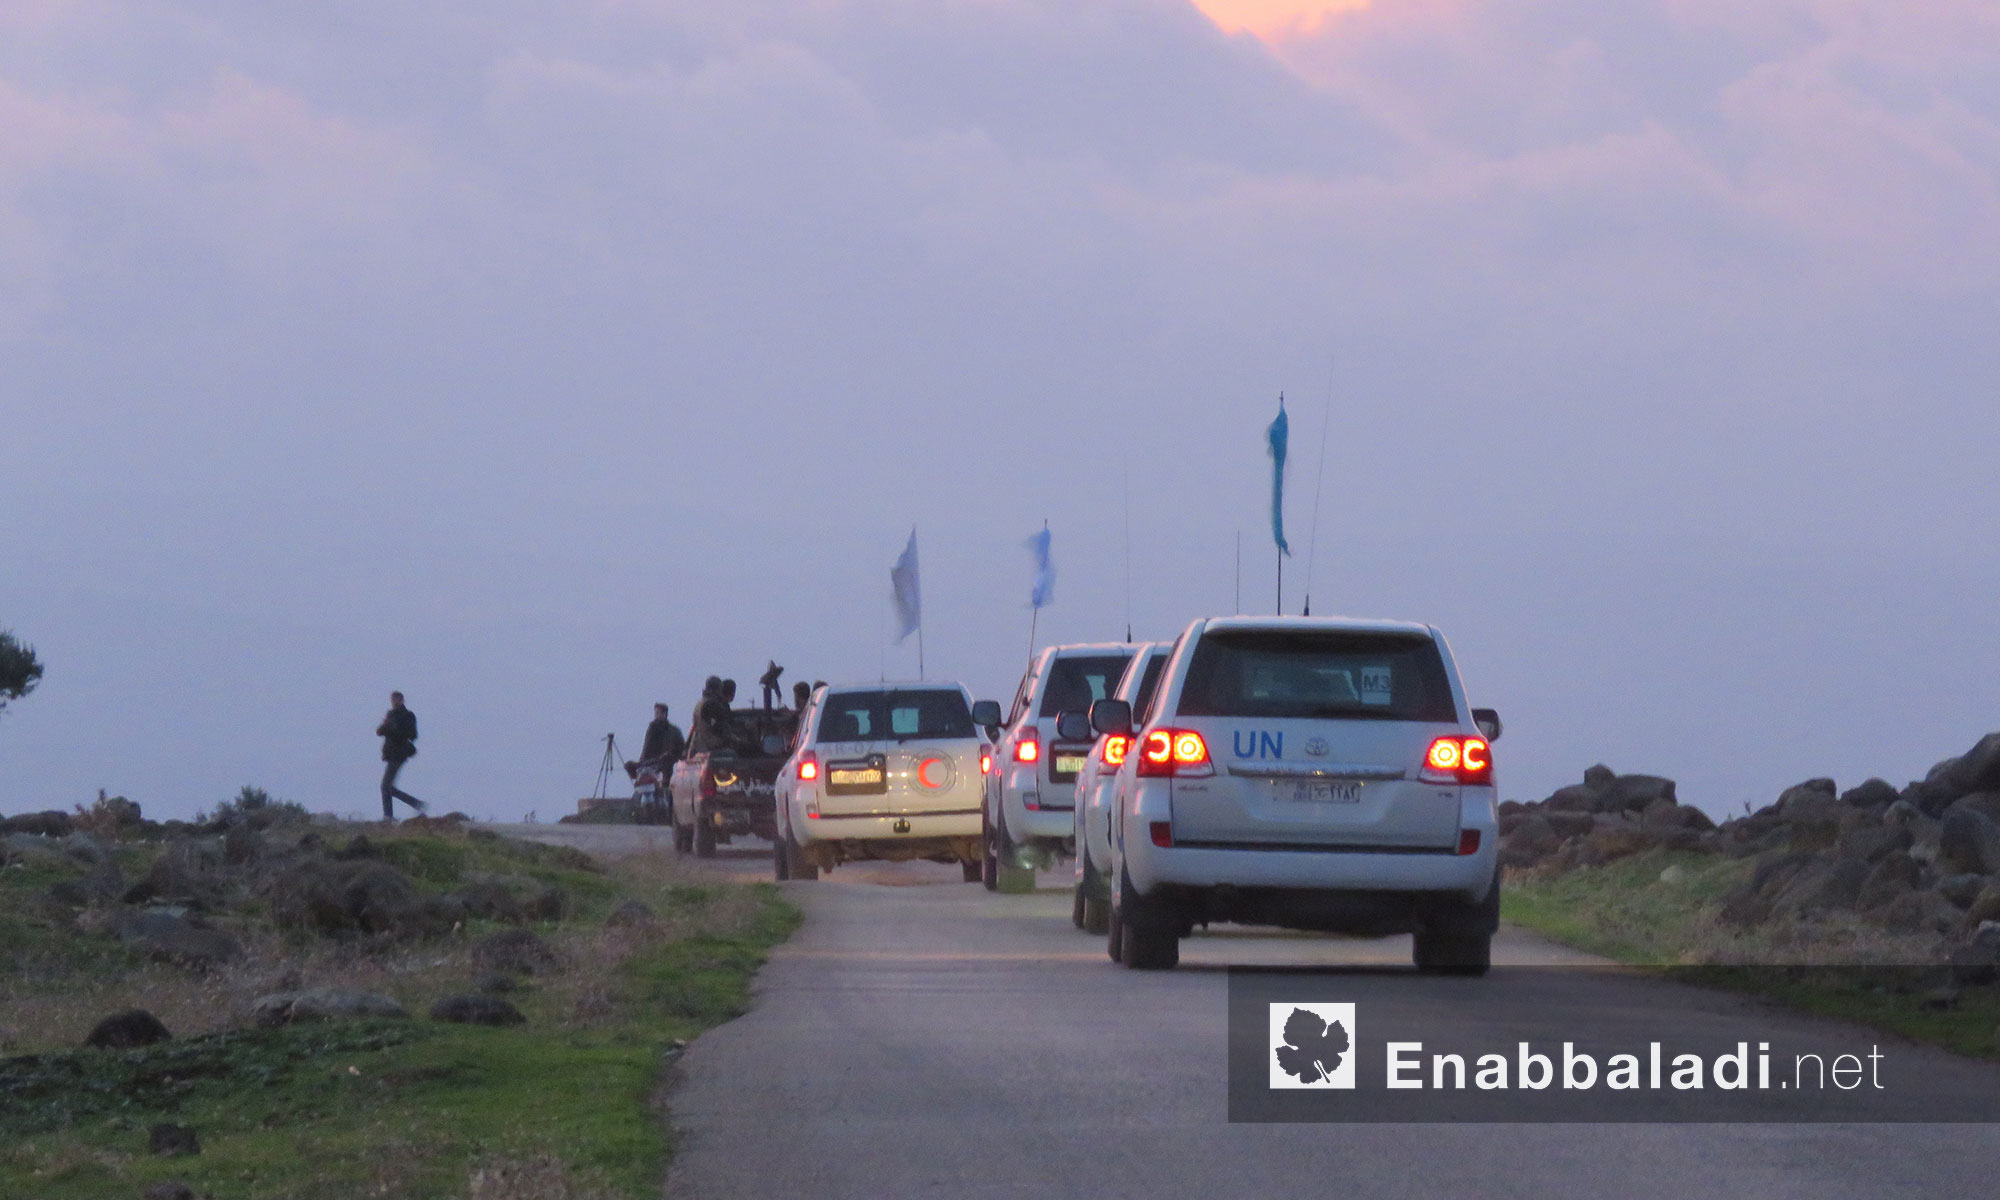 UN aid convoy entering to Houla Region and the southern areas of Hama - 14 December 2017 (Enab Baladi)